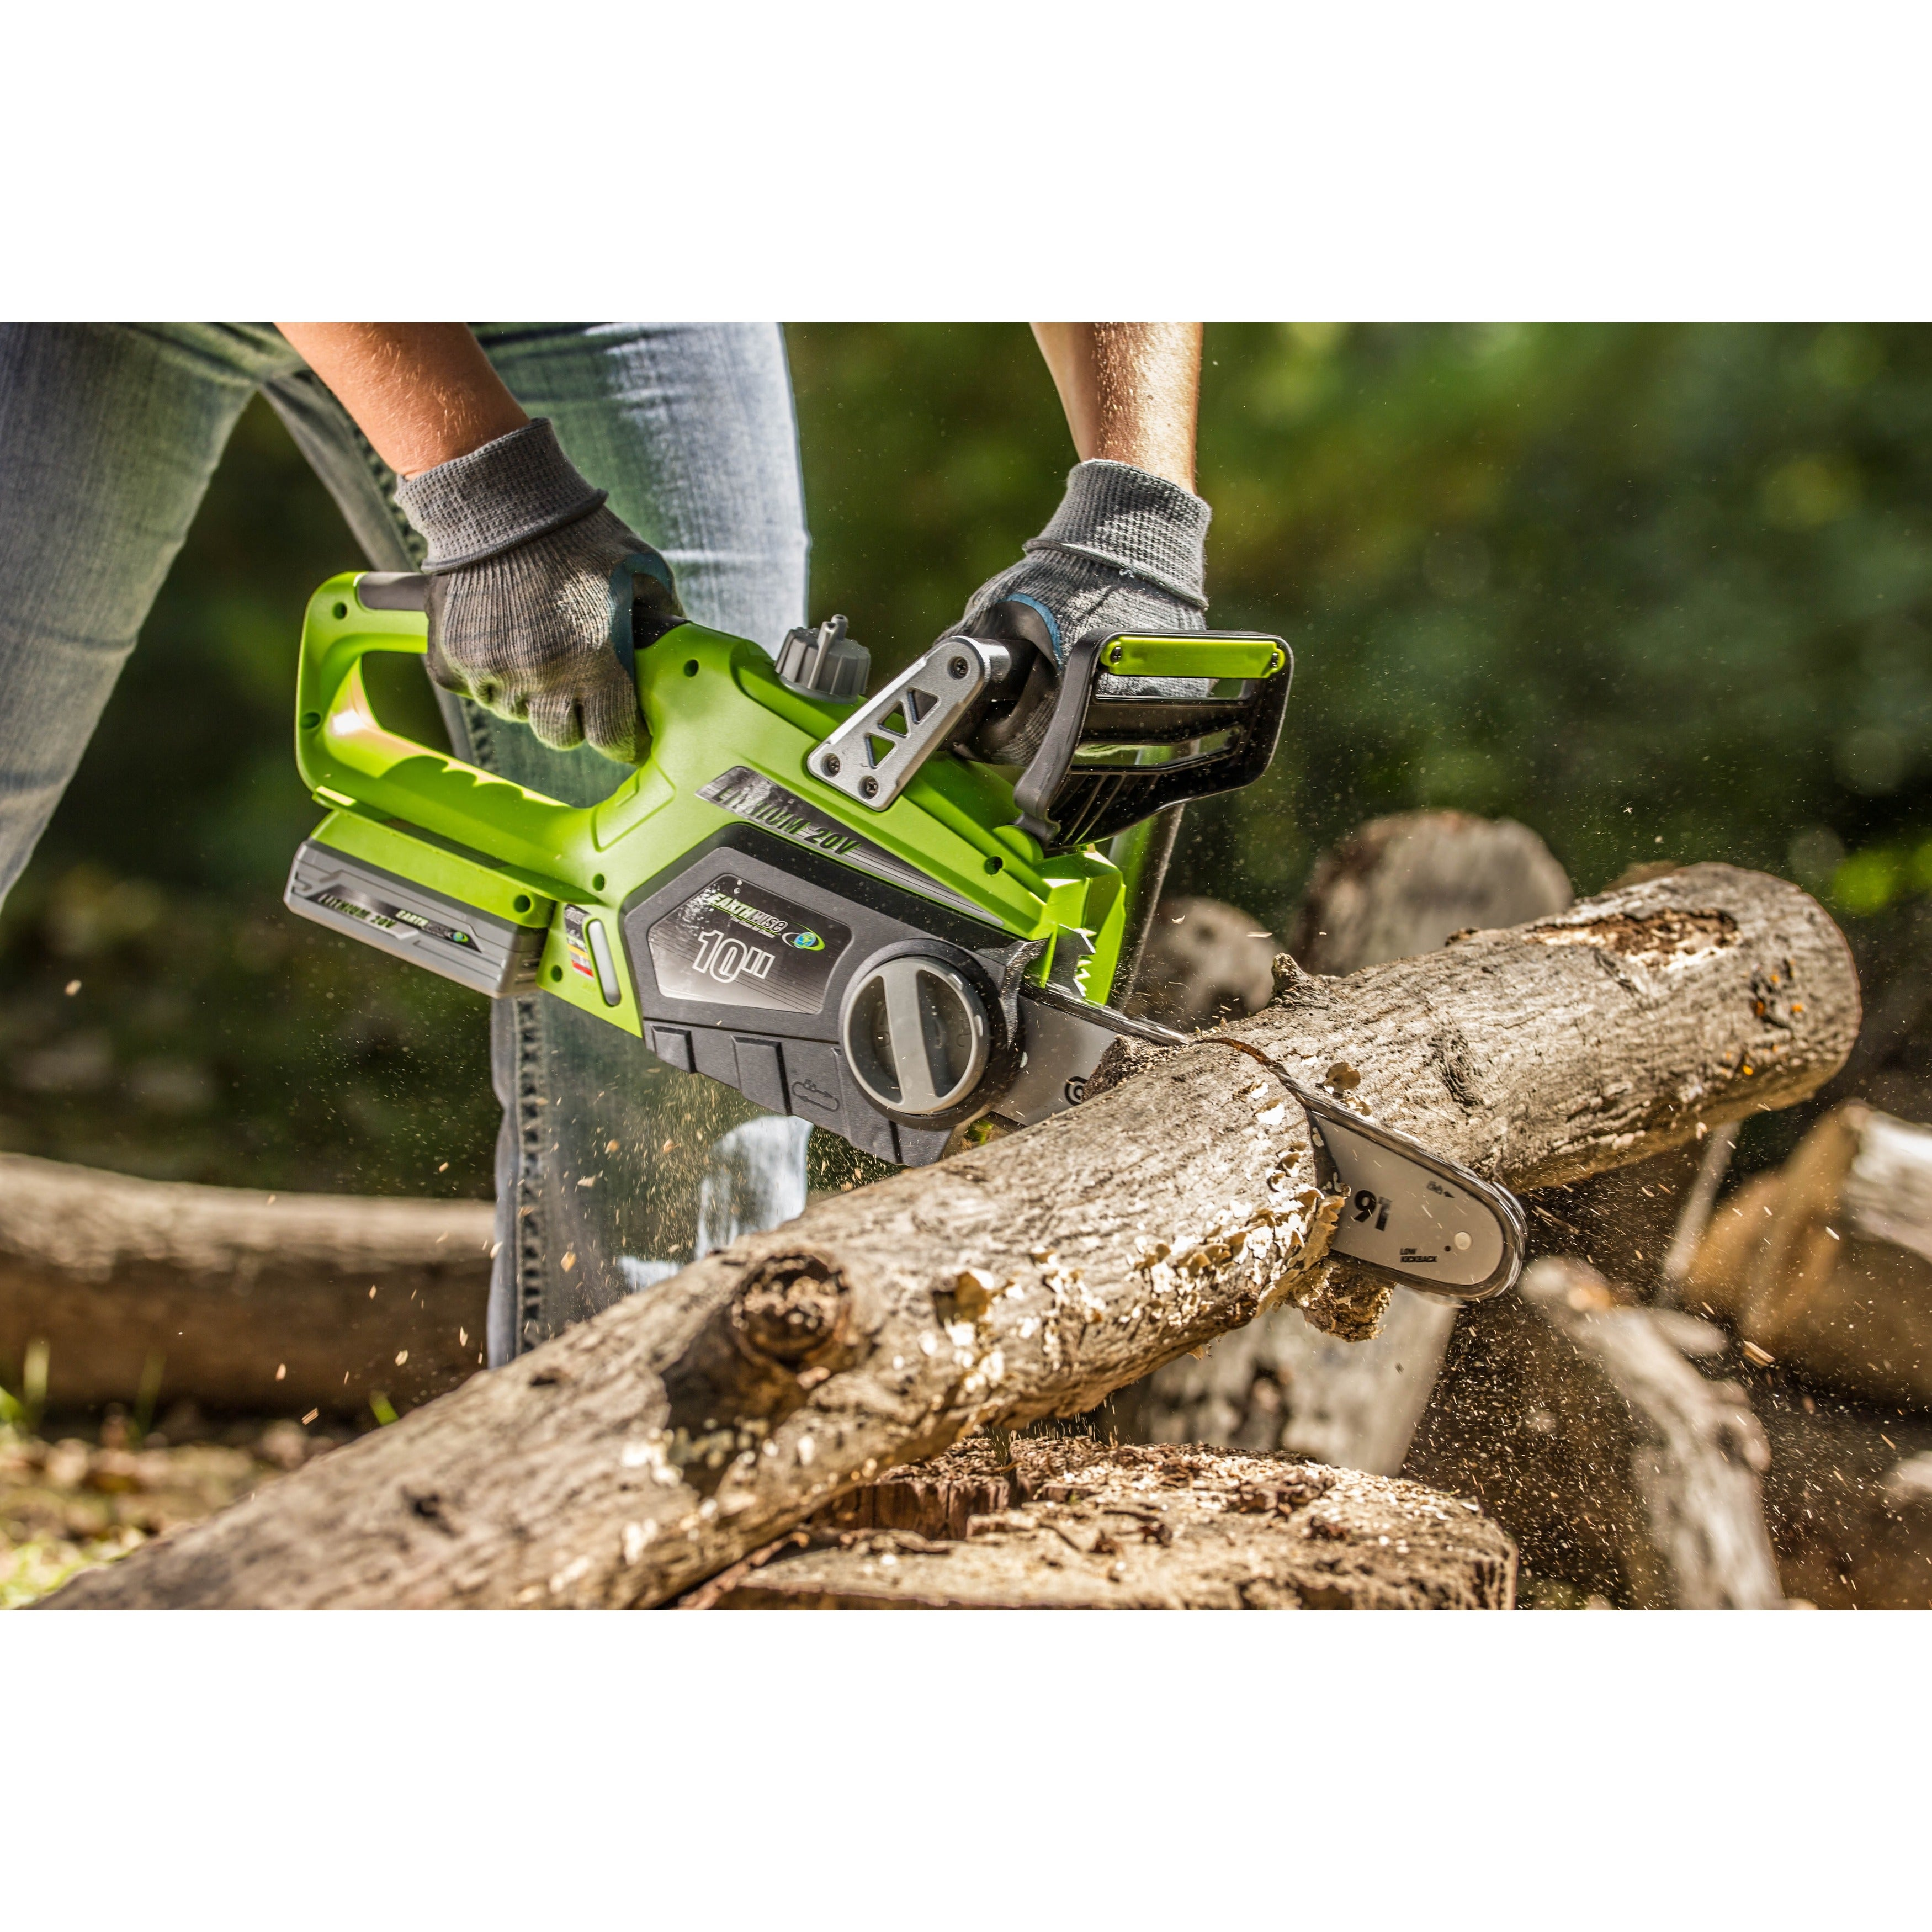 How to put chain on earthwise chainsaw image collections wiring how to put chain on earthwise chainsaw thank you for visiting keyboard keysfo nowadays were excited to declare that we have discovered an incredibly keyboard keysfo Images